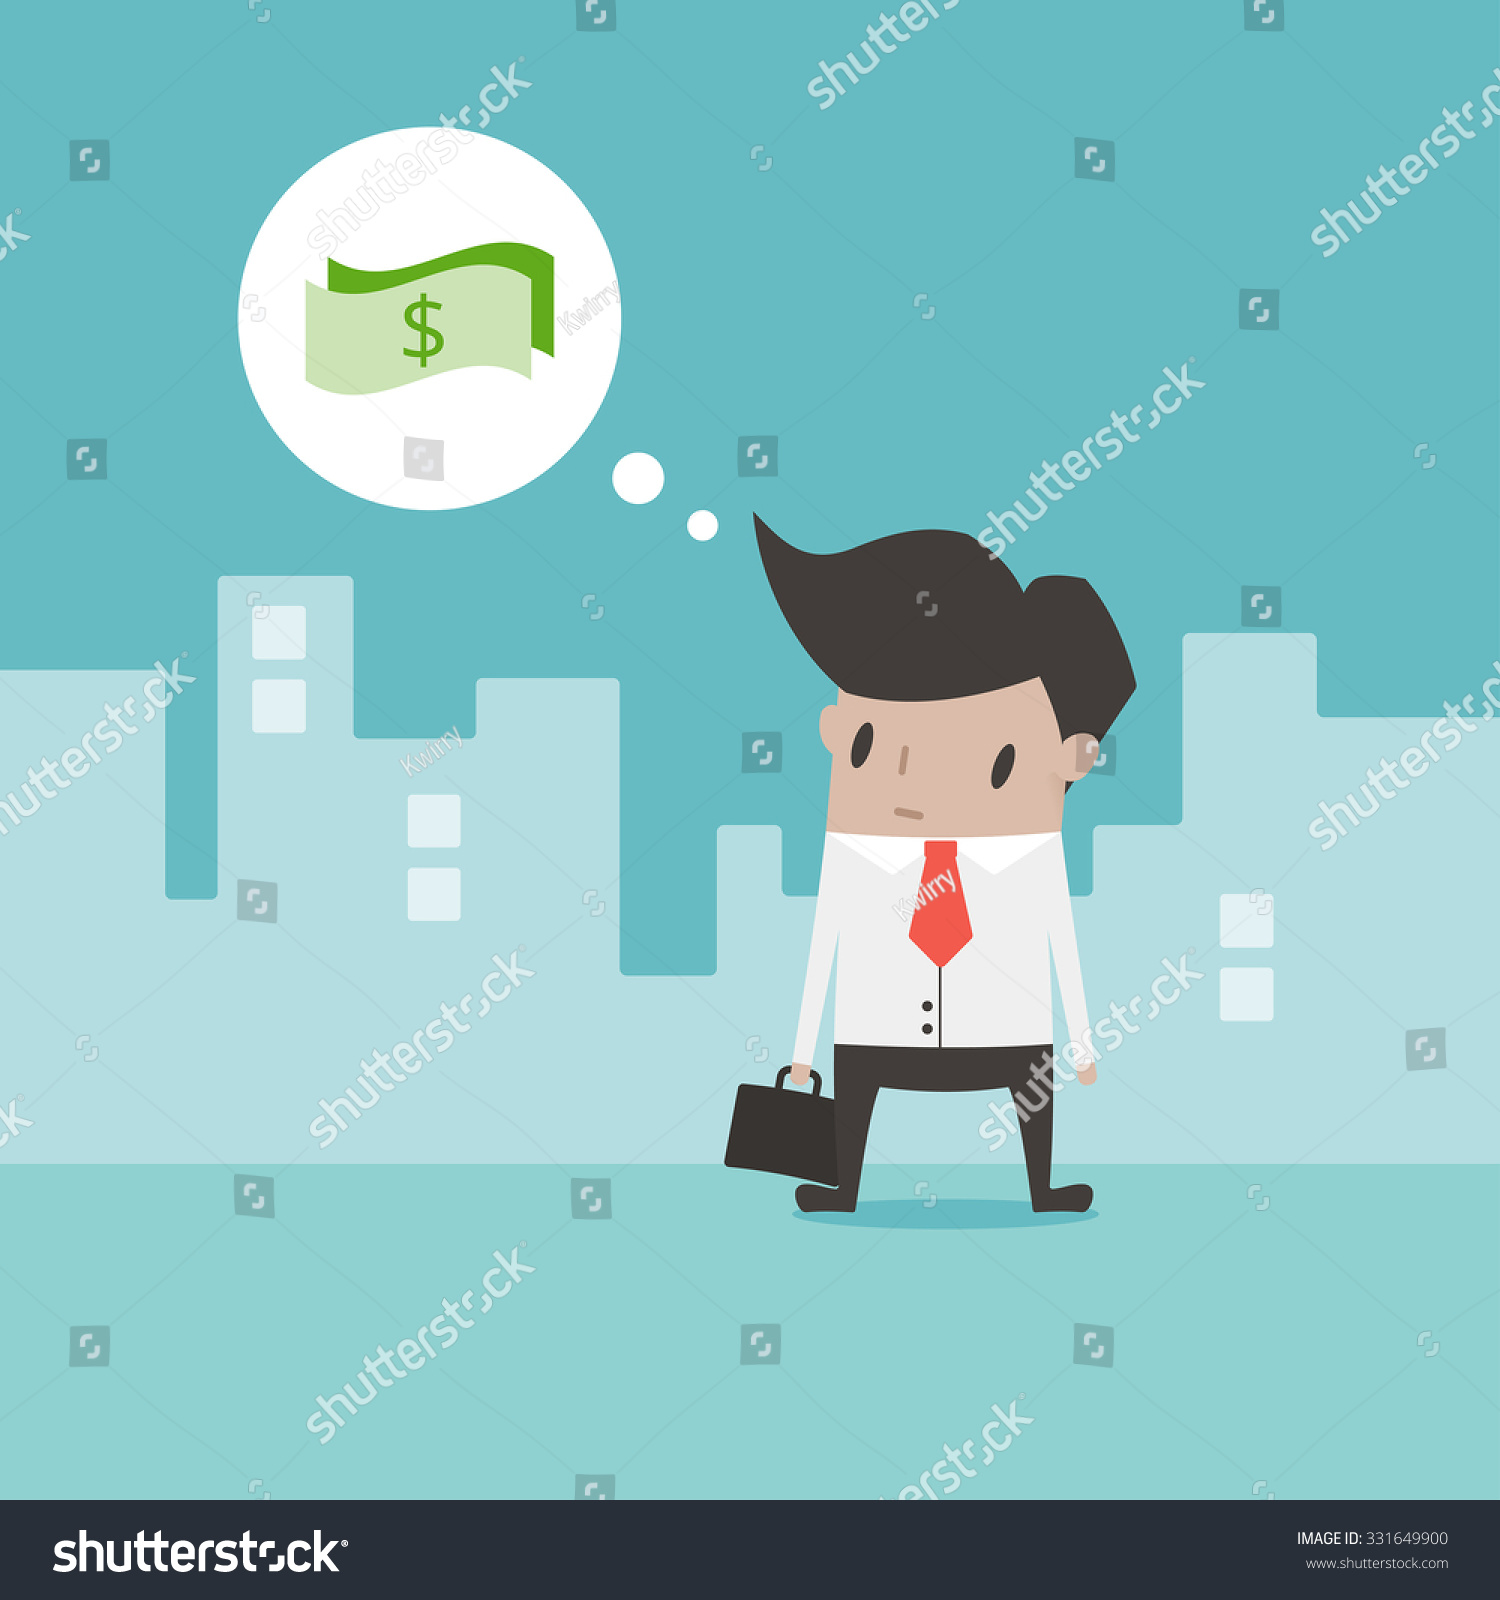 Vector Illustration With Businessman Thinking How To Earn Money Outdoor  Flat Design Illustration